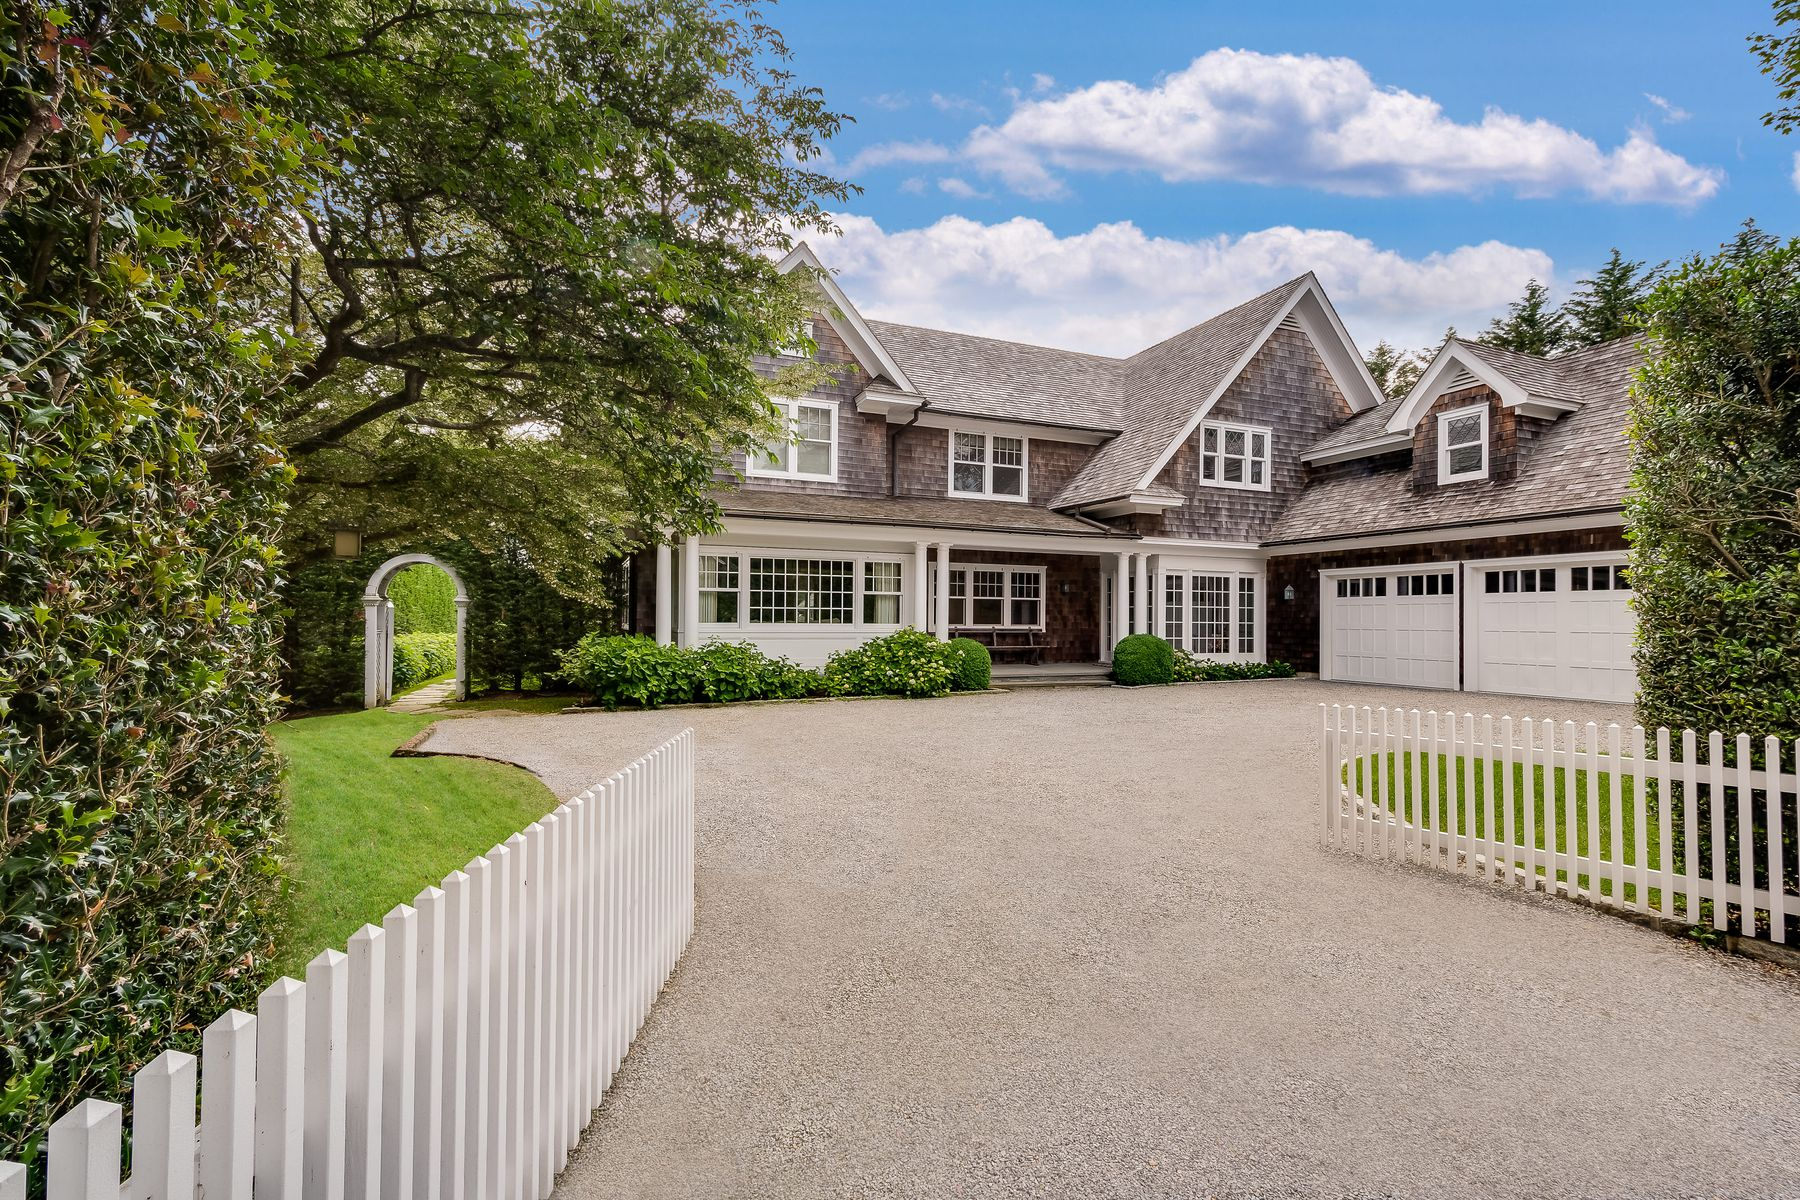 Single Family Homes for Active at 52 Meeting House Lane Amagansett, New York 11930 United States